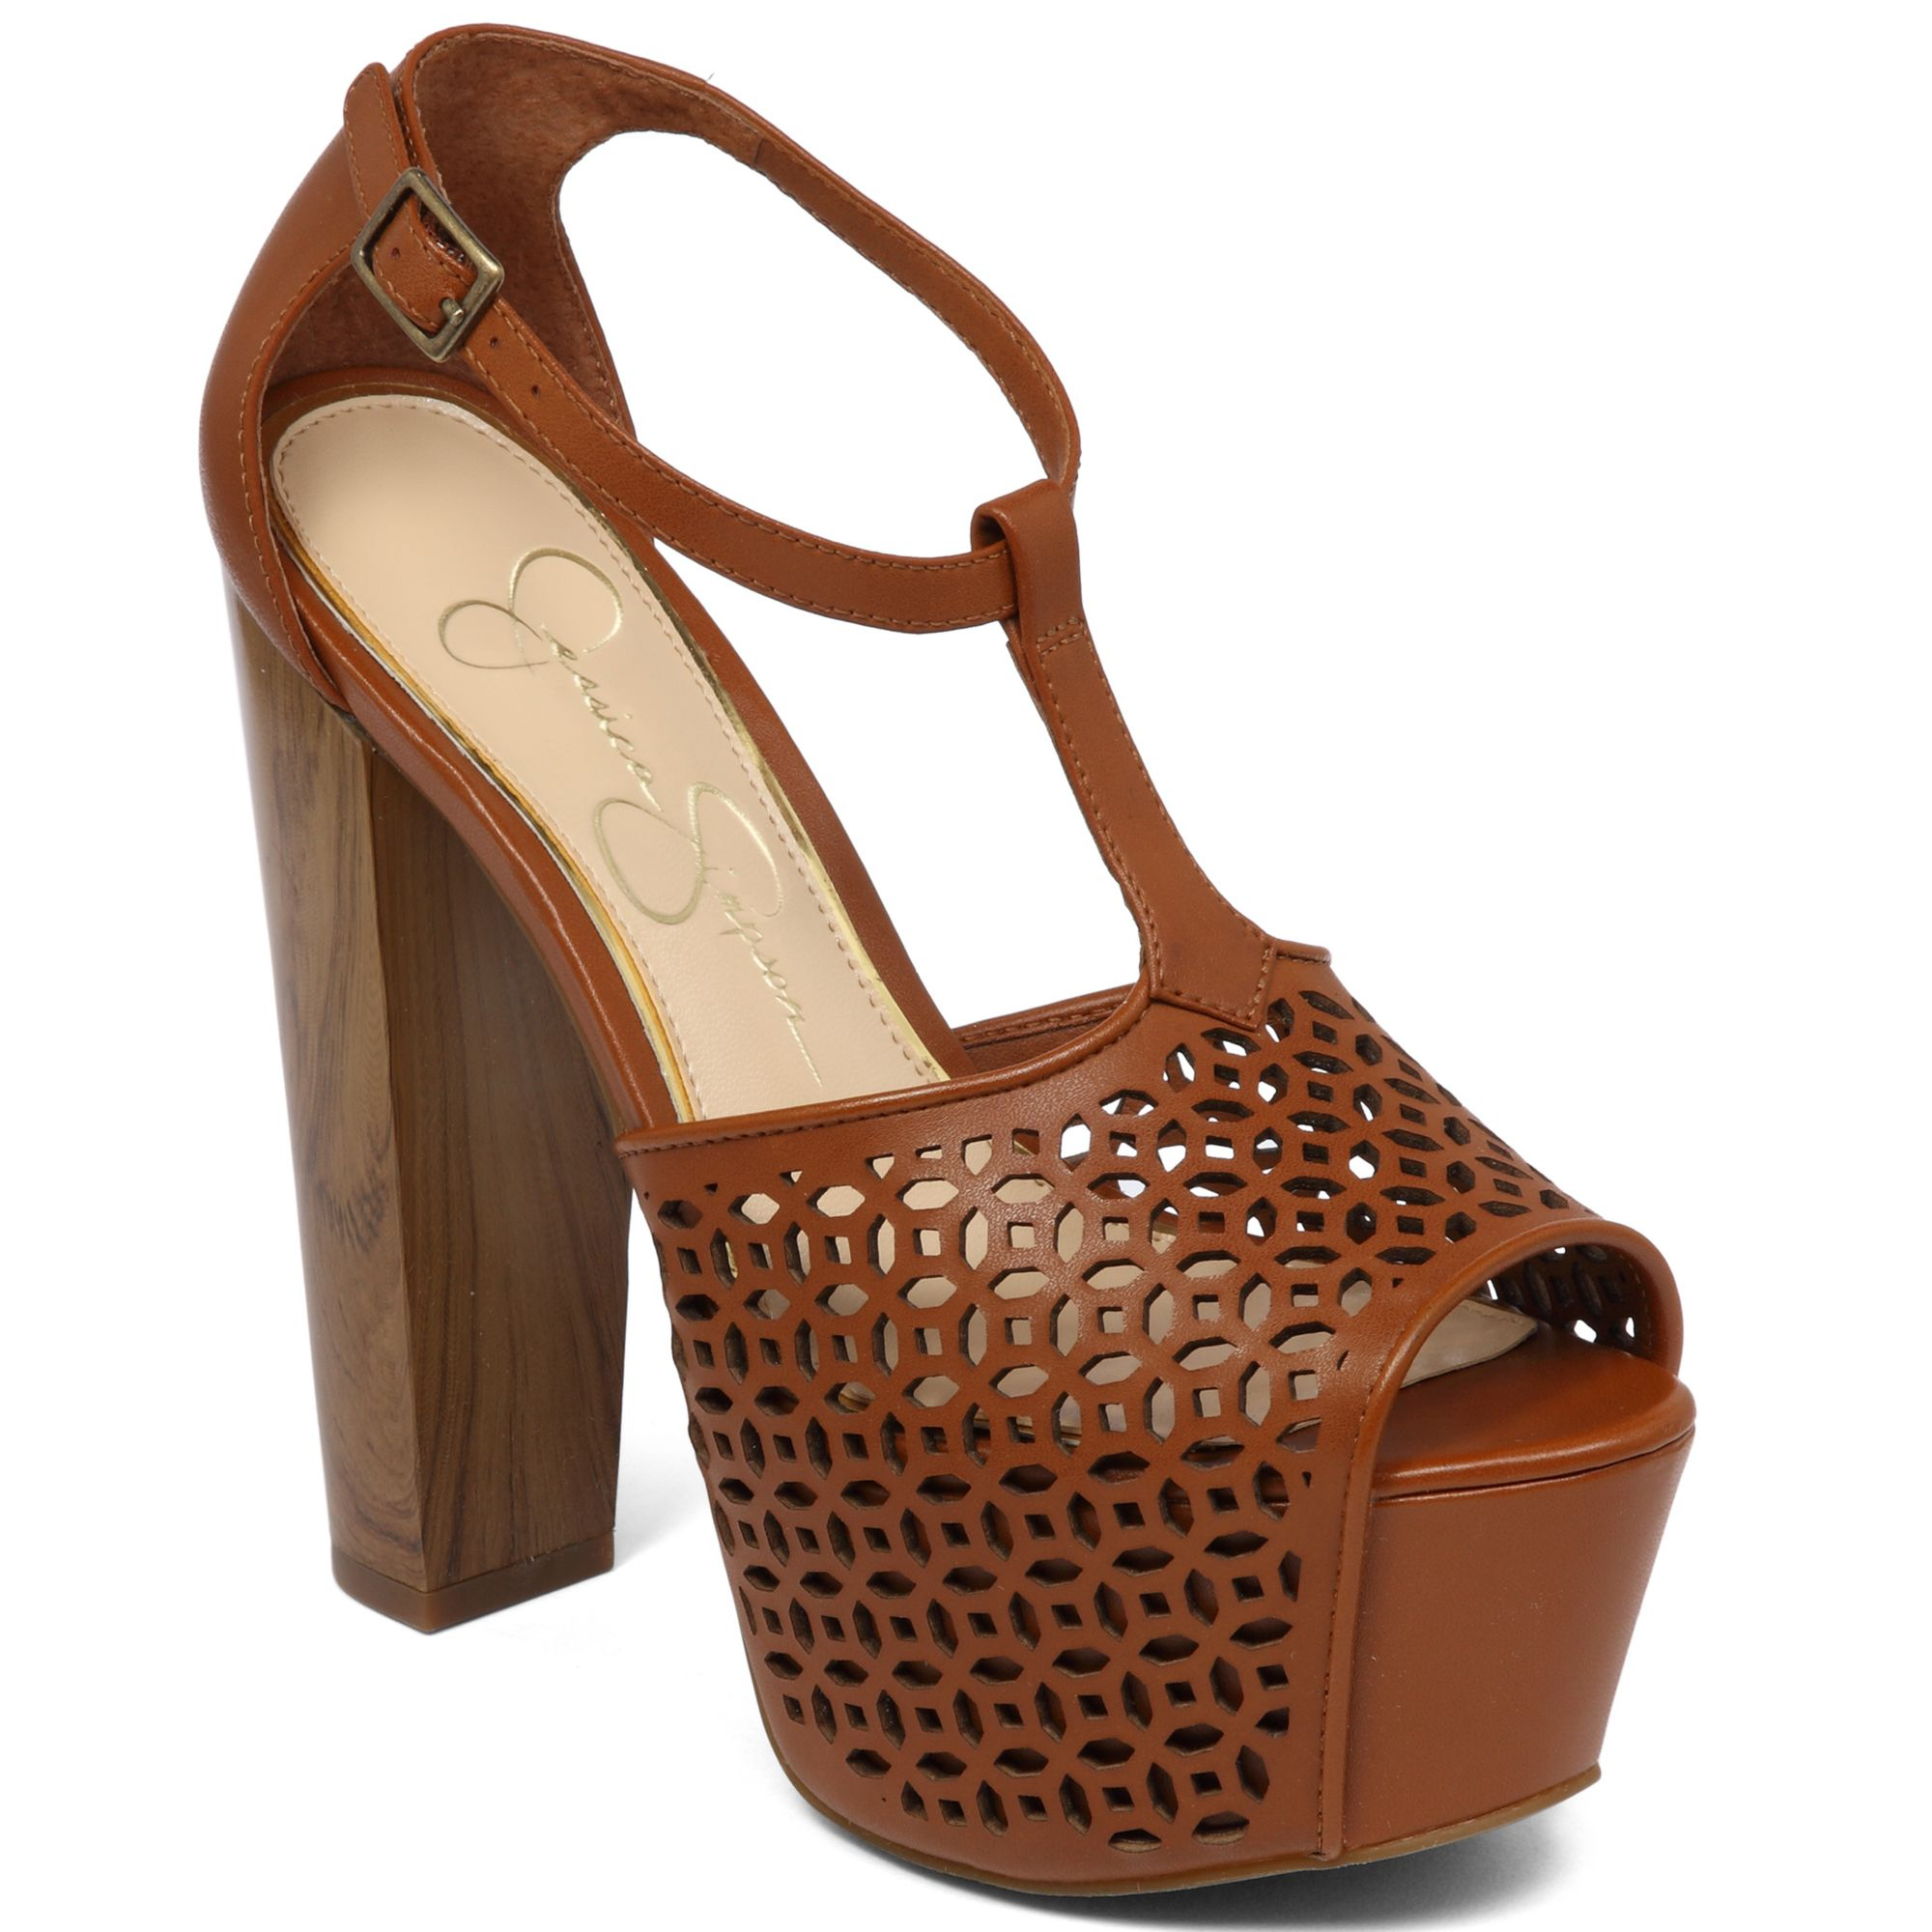 ed6e9345b6e9 Lyst - Jessica Simpson Dany Perforated Platform Sandals in Brown